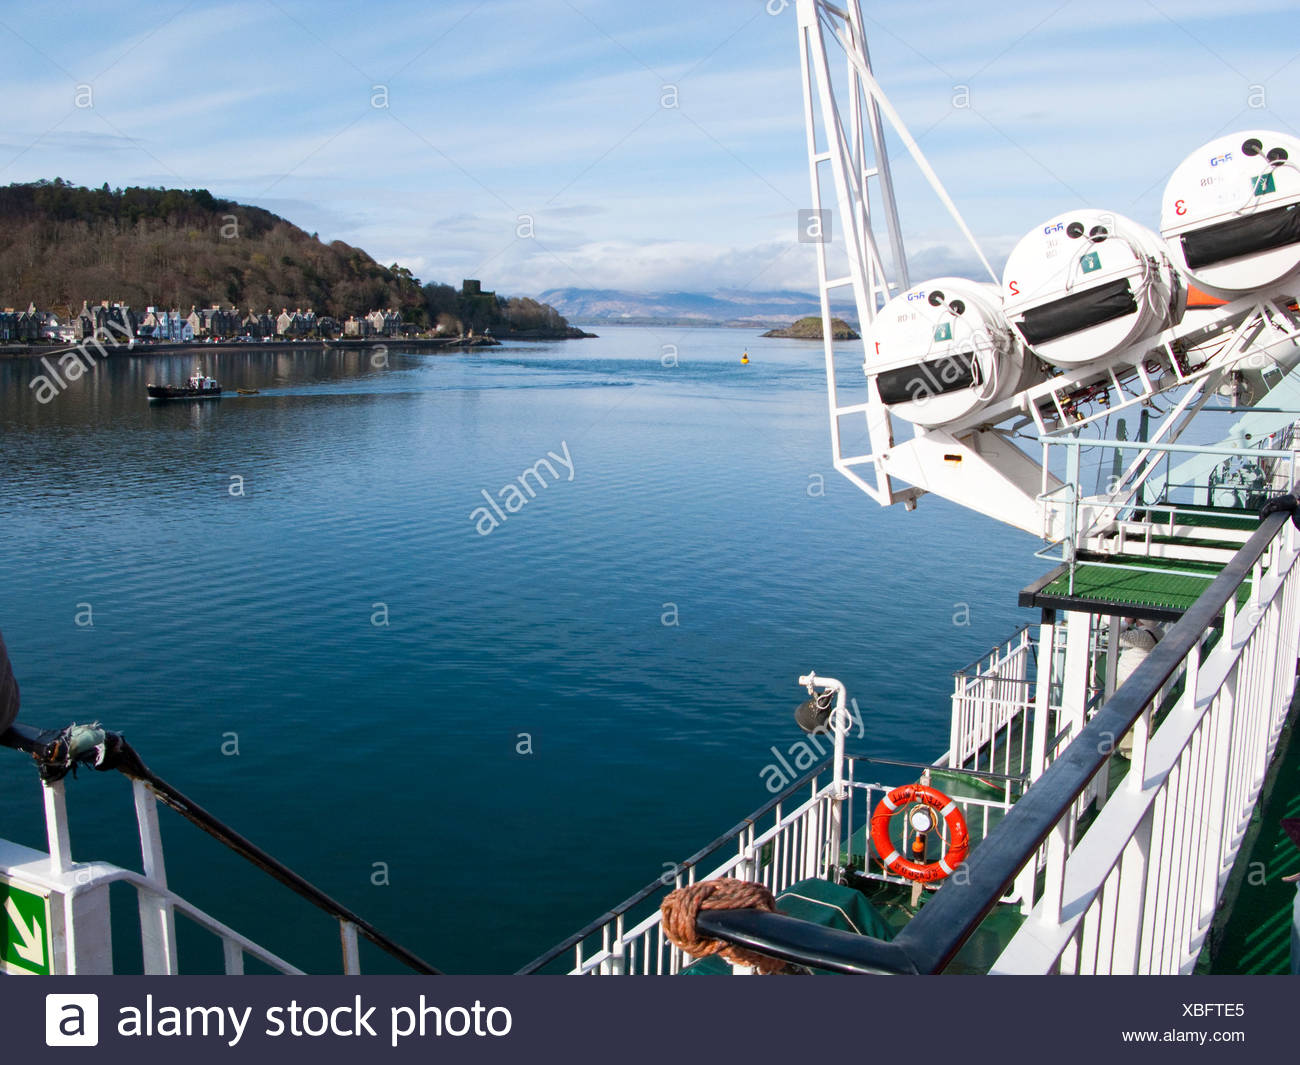 Life saving equipment on board the Oban to Mull car ferry - Stock Image